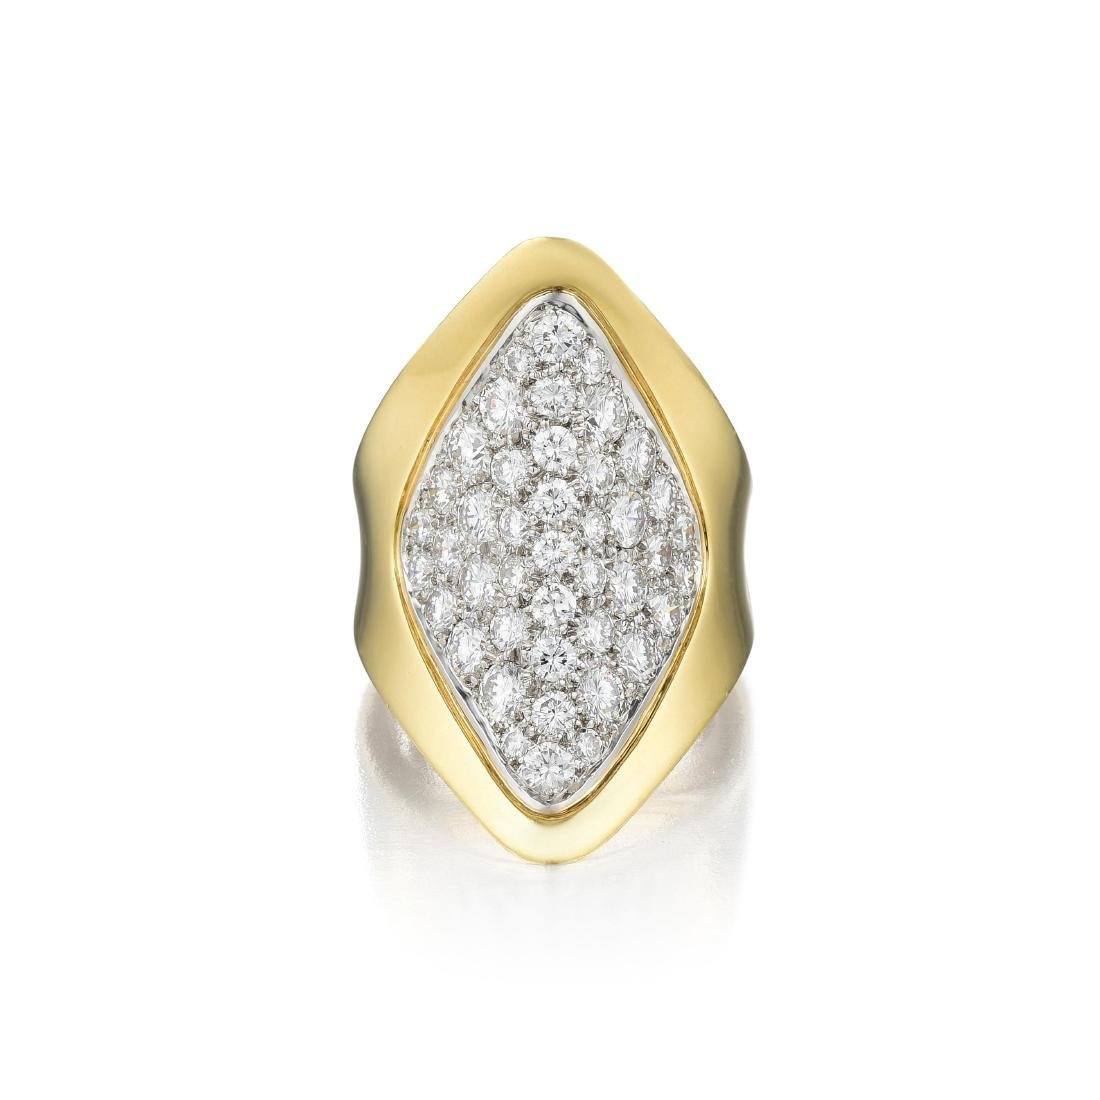 A Diamond Ring, French